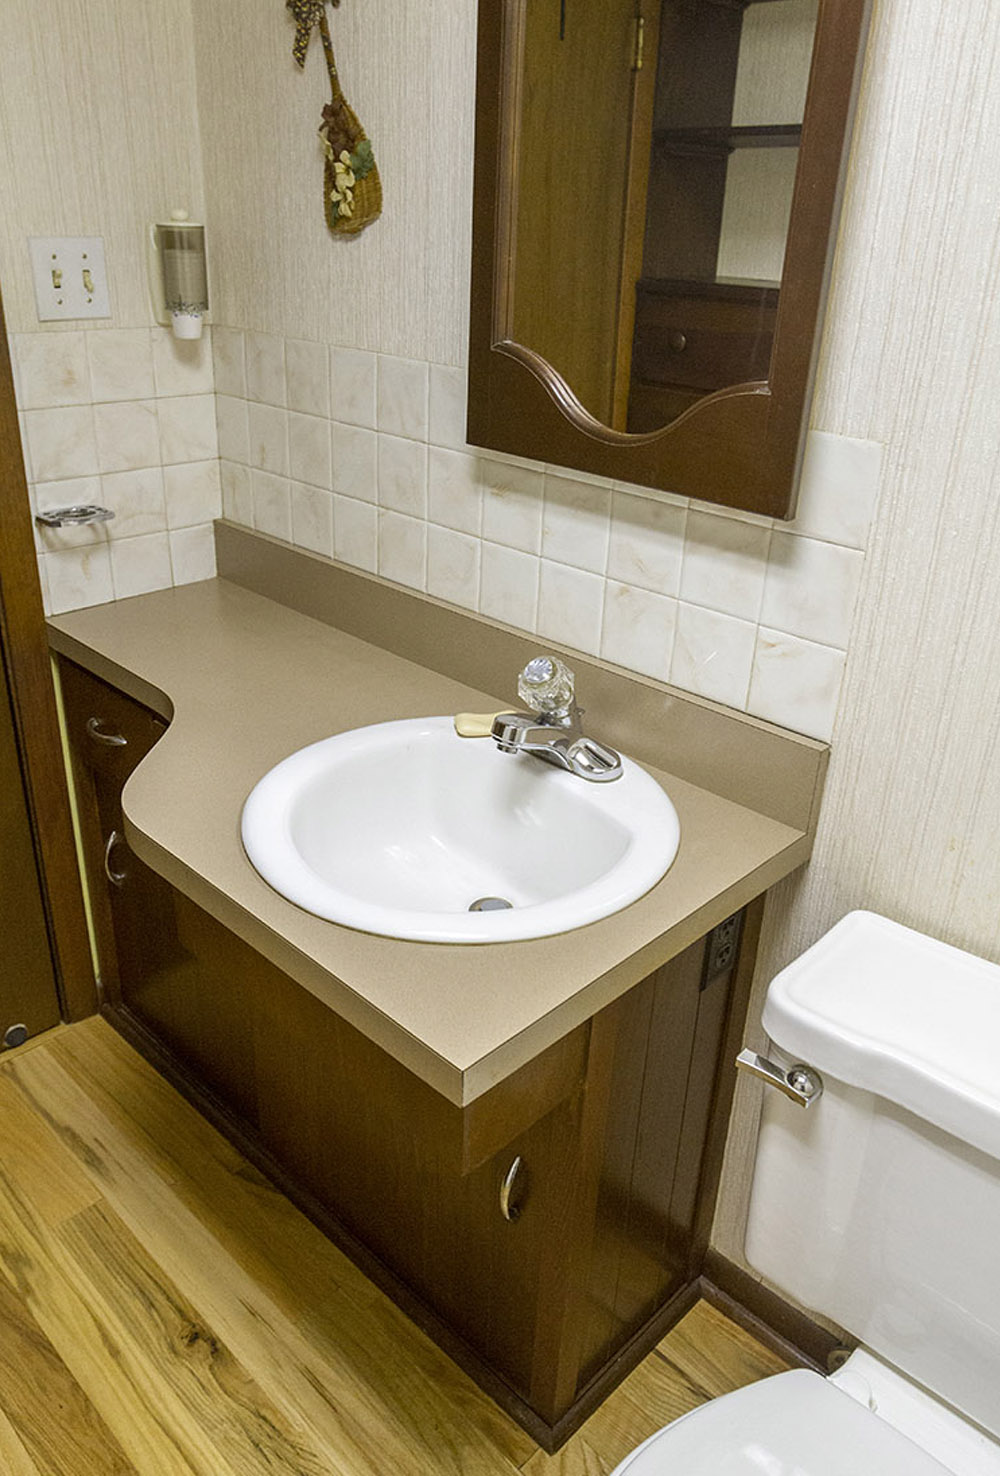 A brown bathroom vanity with a white sink against a beige wall with a mirror.